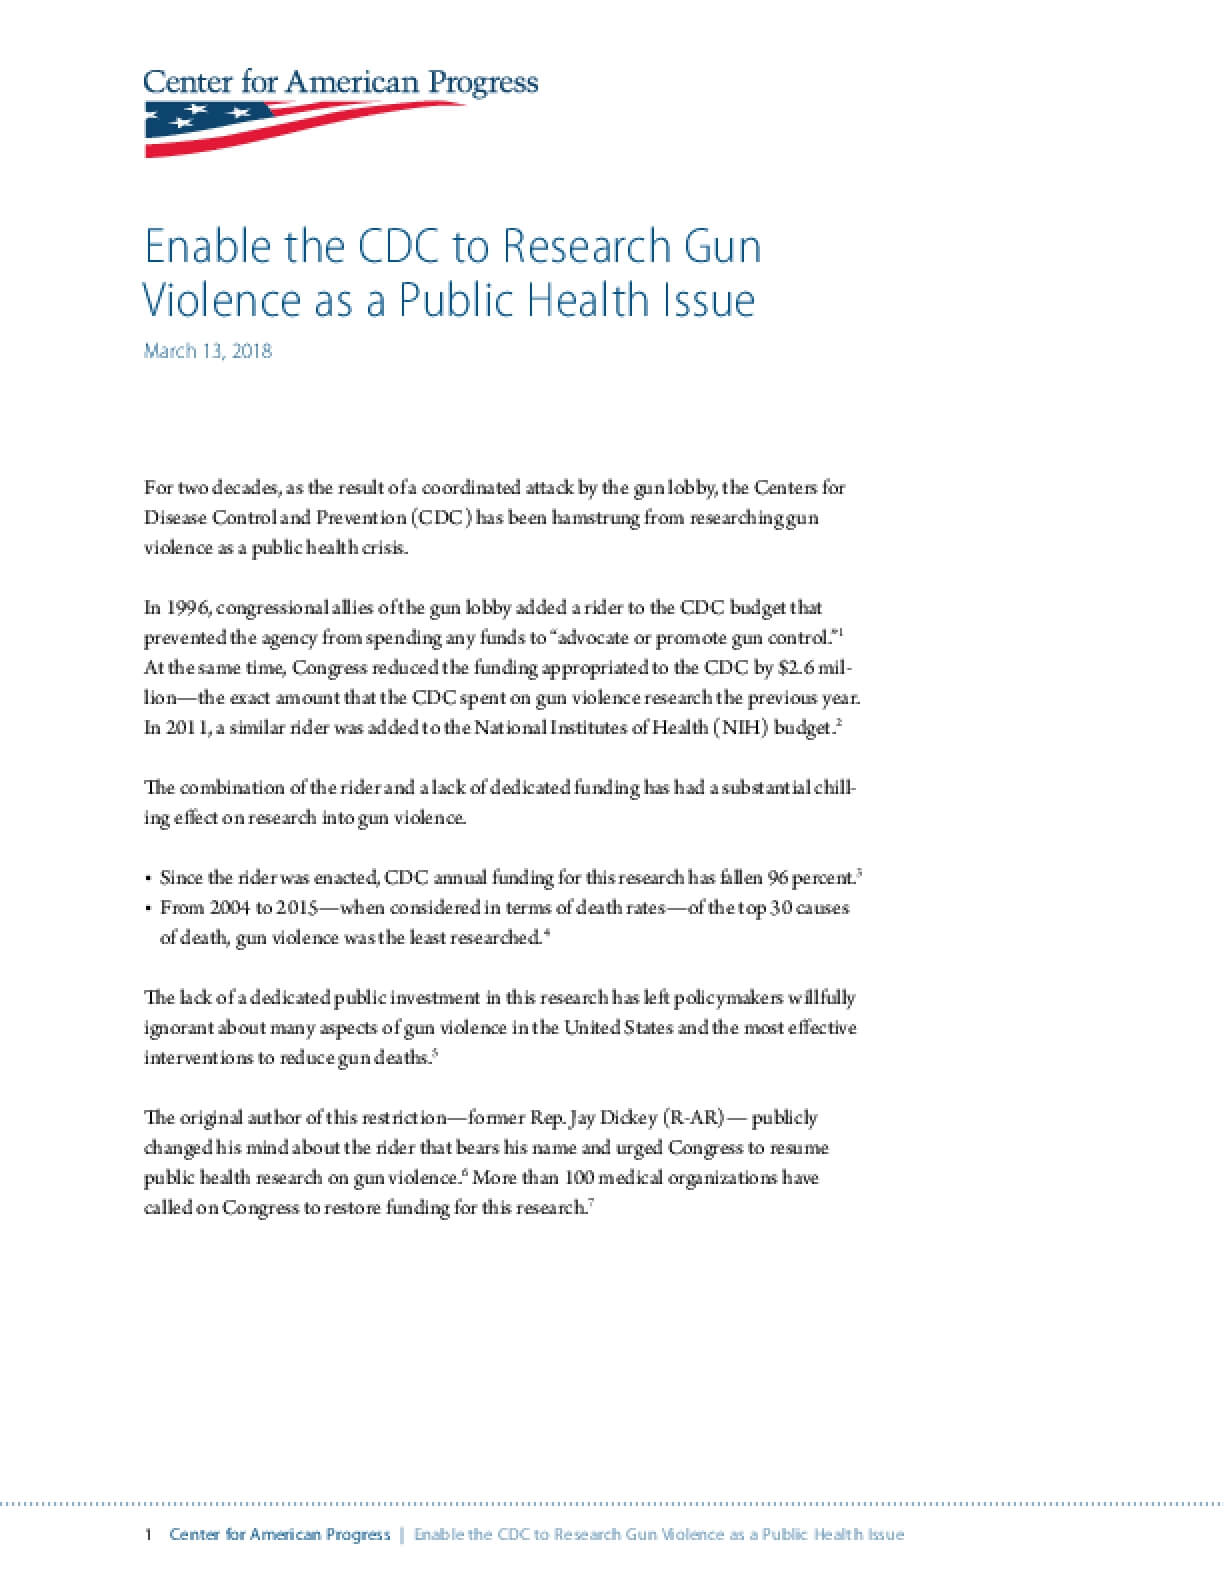 Enable the CDC to Research Gun Violence as a Public Health Issue